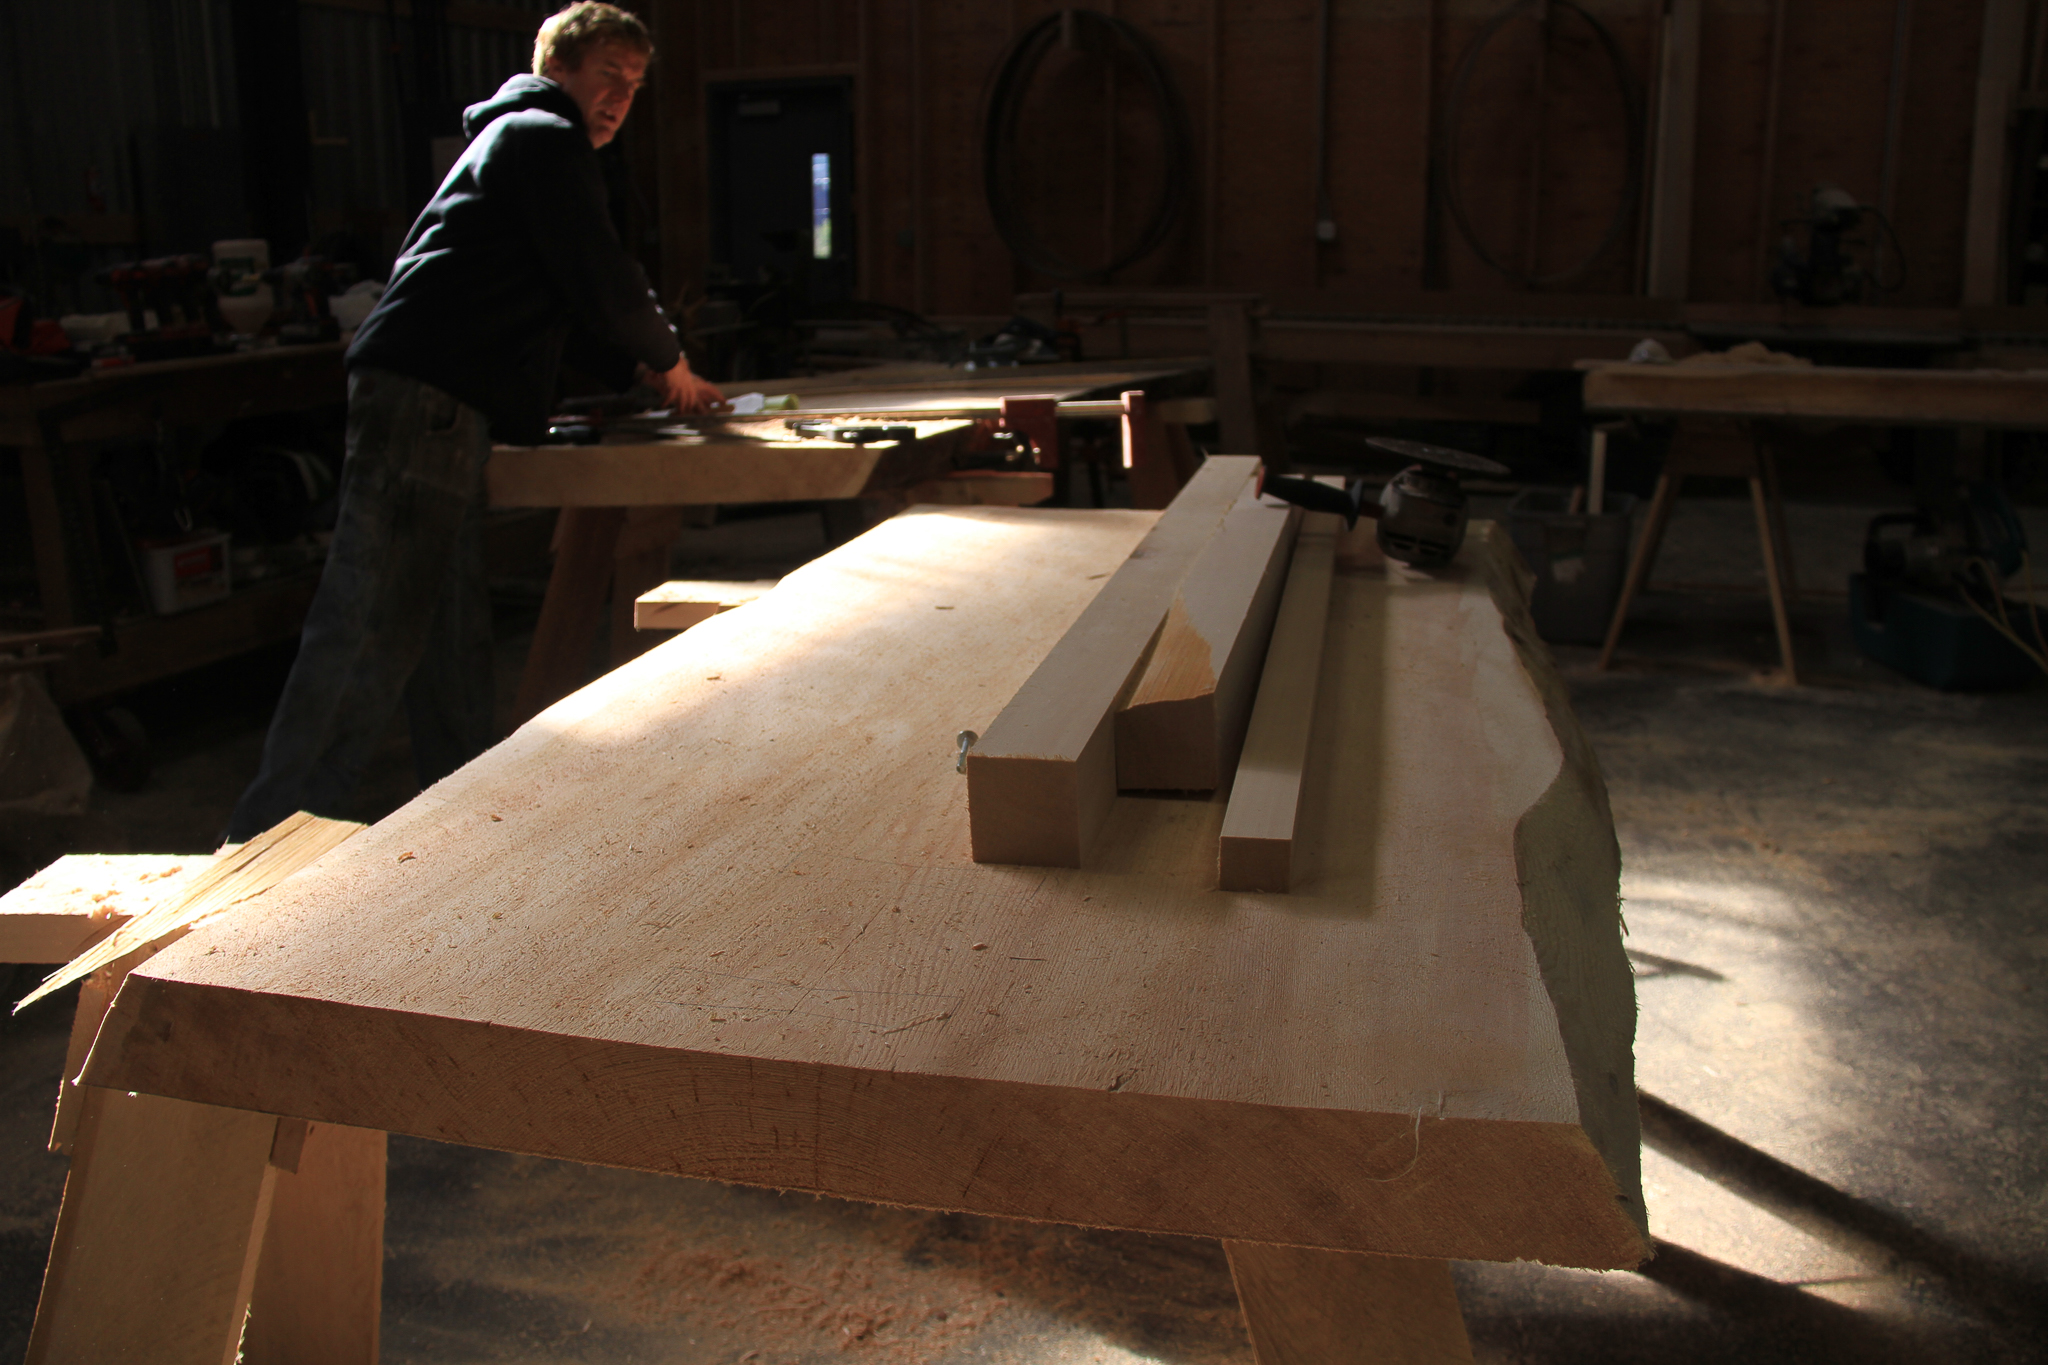 Like many of the small mills in Southeast Alaska, Larry Jackson's Tongass Forest Enterprises in Ketchikan makes value-added products out of old-growth trees. Here, Jackson shows some slab tables that will fill a custom order from a local family.